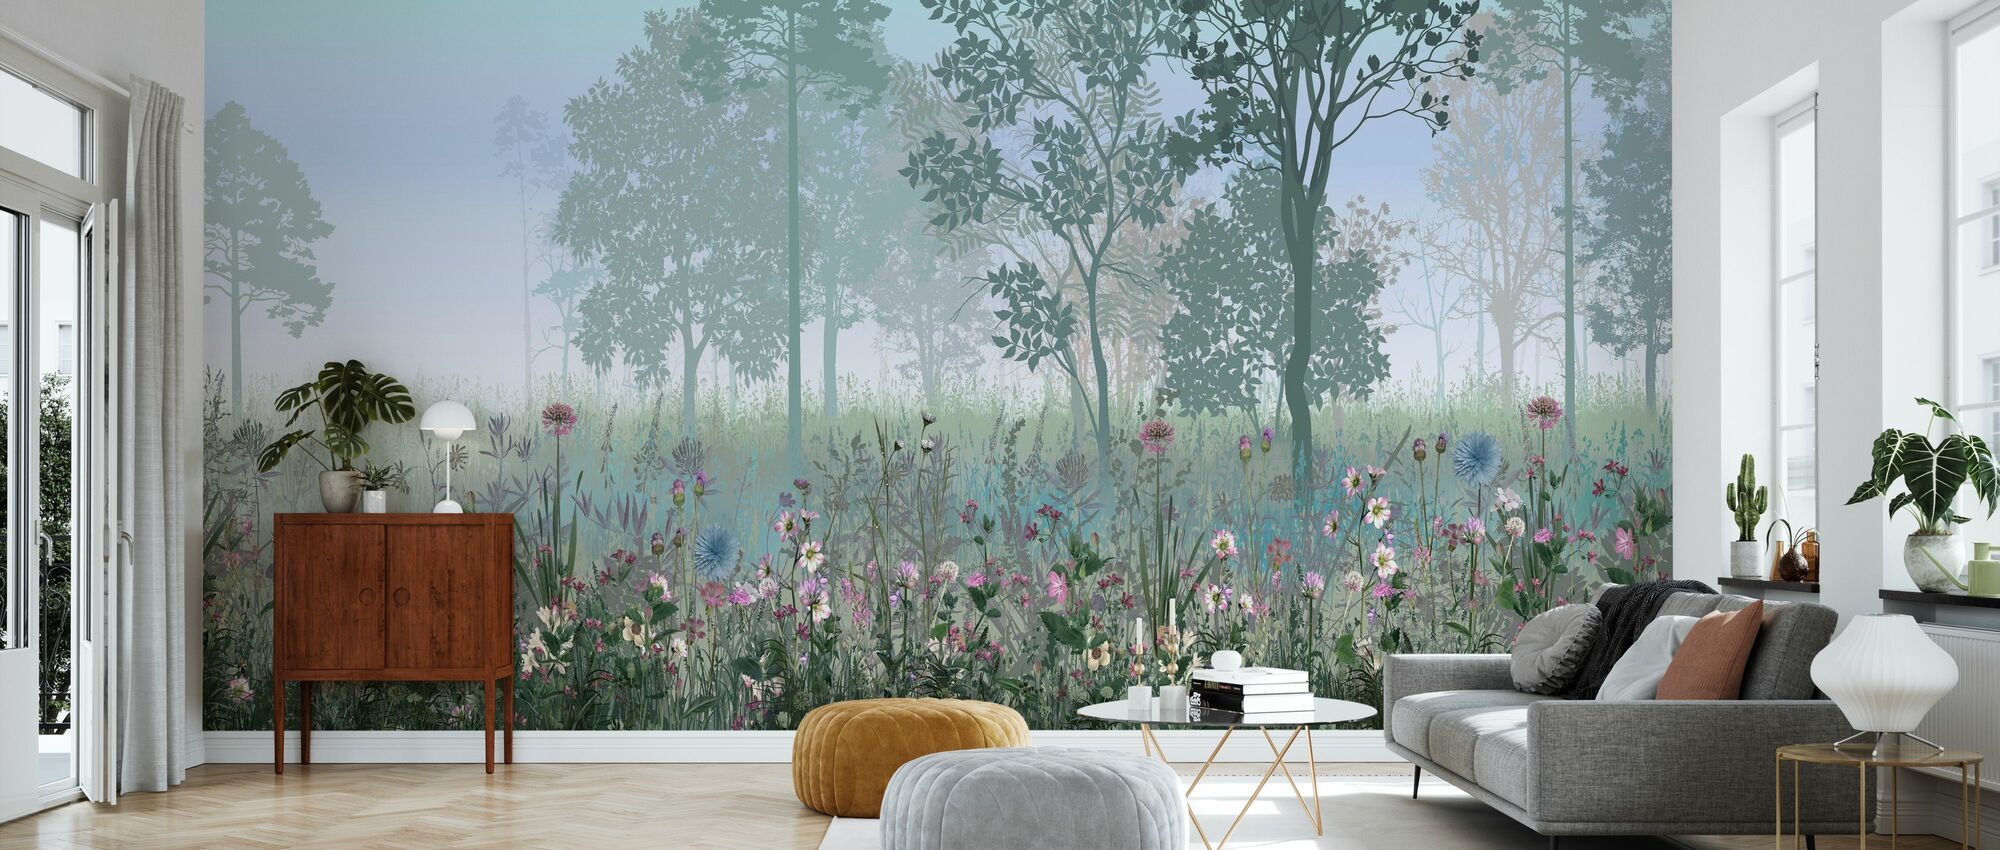 Hazy Forest - Wallpaper - Living Room